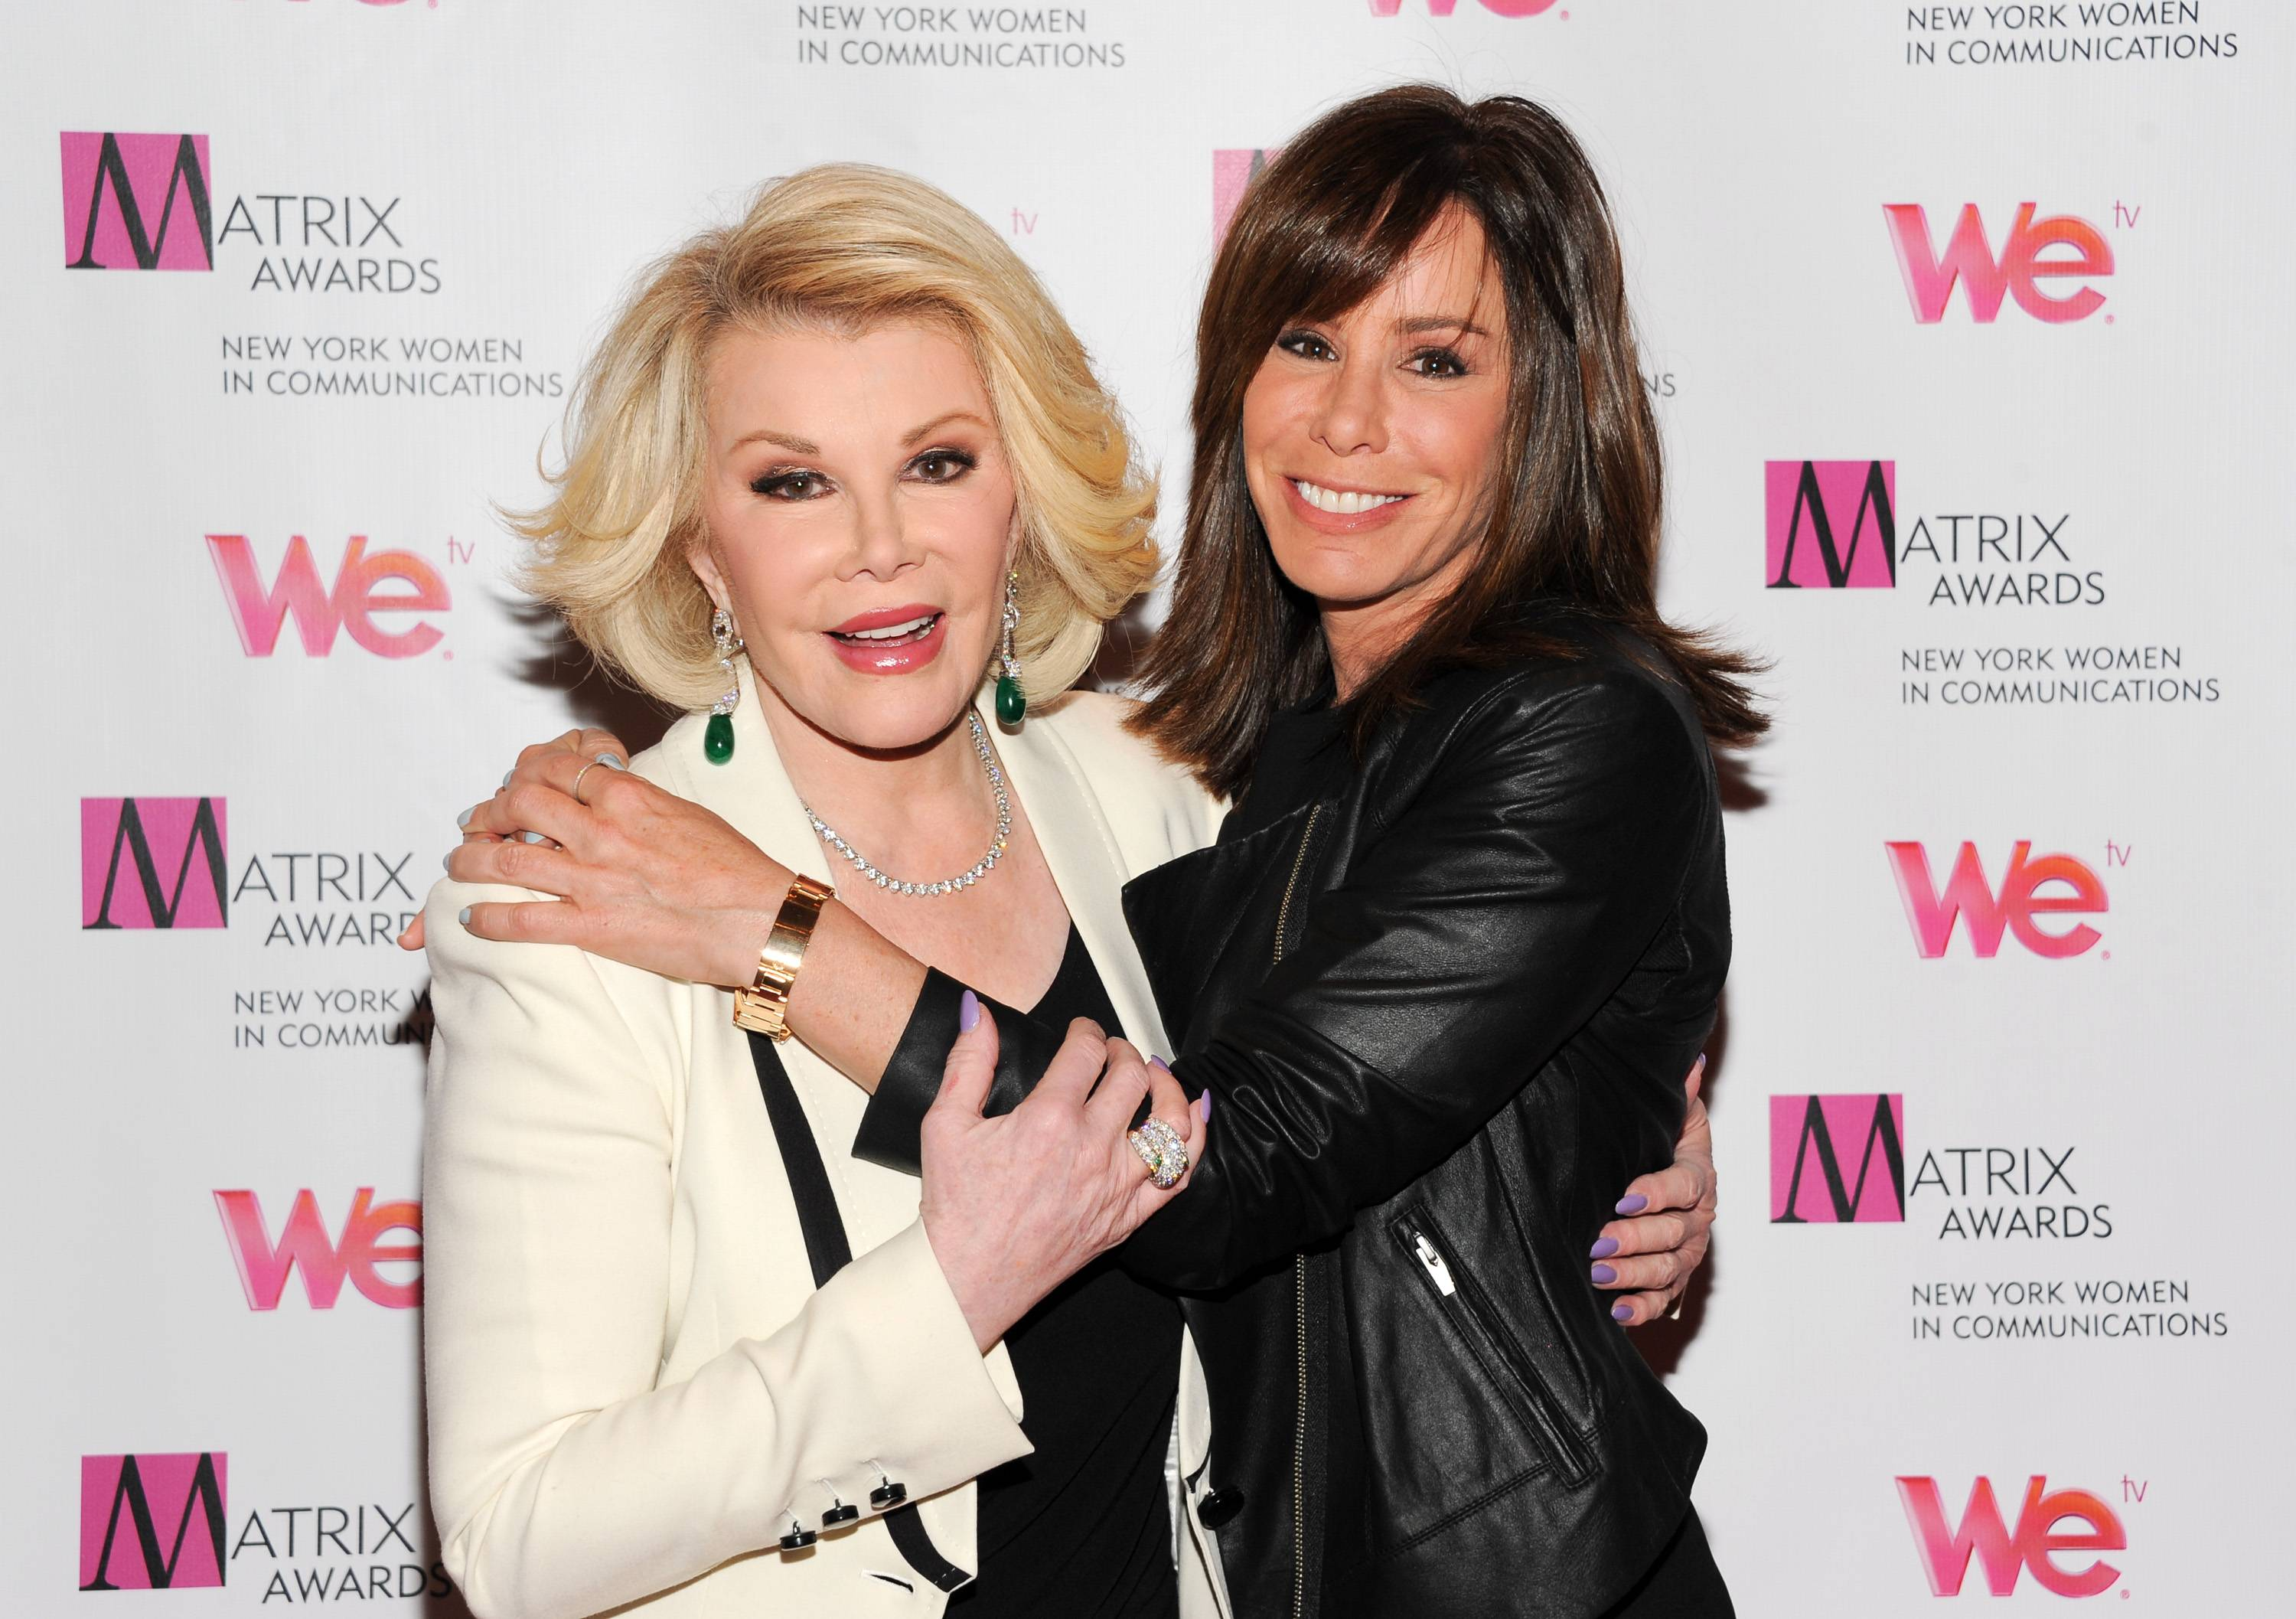 "TV personalities Joan Rivers, left, and daughter Melissa Rivers at the 2013 Matrix New York Women in Communications Awards in New York. Rivers, who for more than a half-century has turned her life inside out for comedy, is starting her fourth season doing it for the reality show she shares with her daughter, Melissa. ""Joan & Melissa: Joan Knows Best?"" airs Saturdays at 10 p.m. on WEtv."